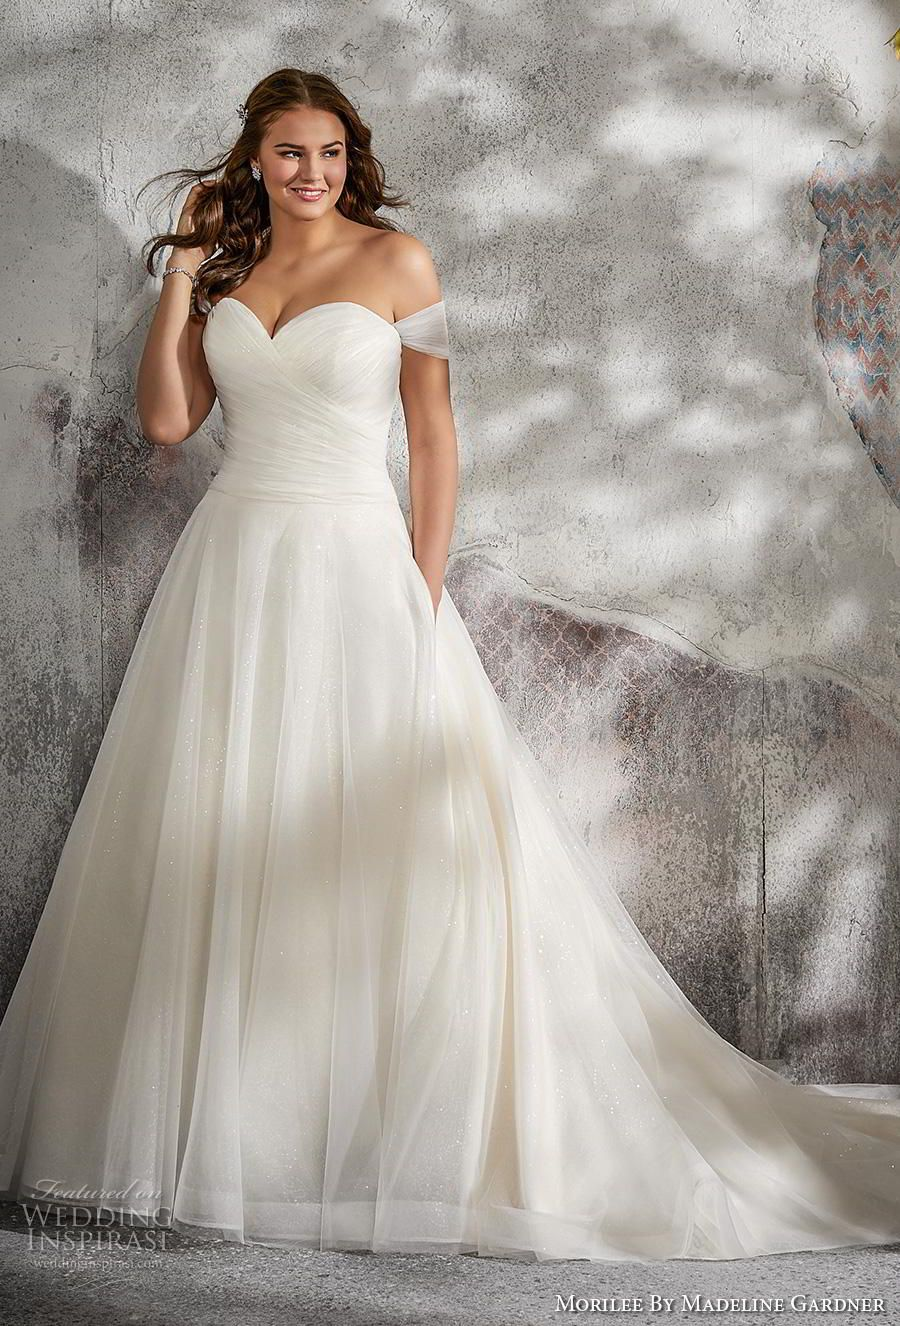 Morilee S Julietta Bridal Collection Designed To Celebrate Your Curves Wedding Inspirasi Ball Gowns Wedding Plus Size Wedding Gowns Curvy Wedding Dress [ 1326 x 900 Pixel ]